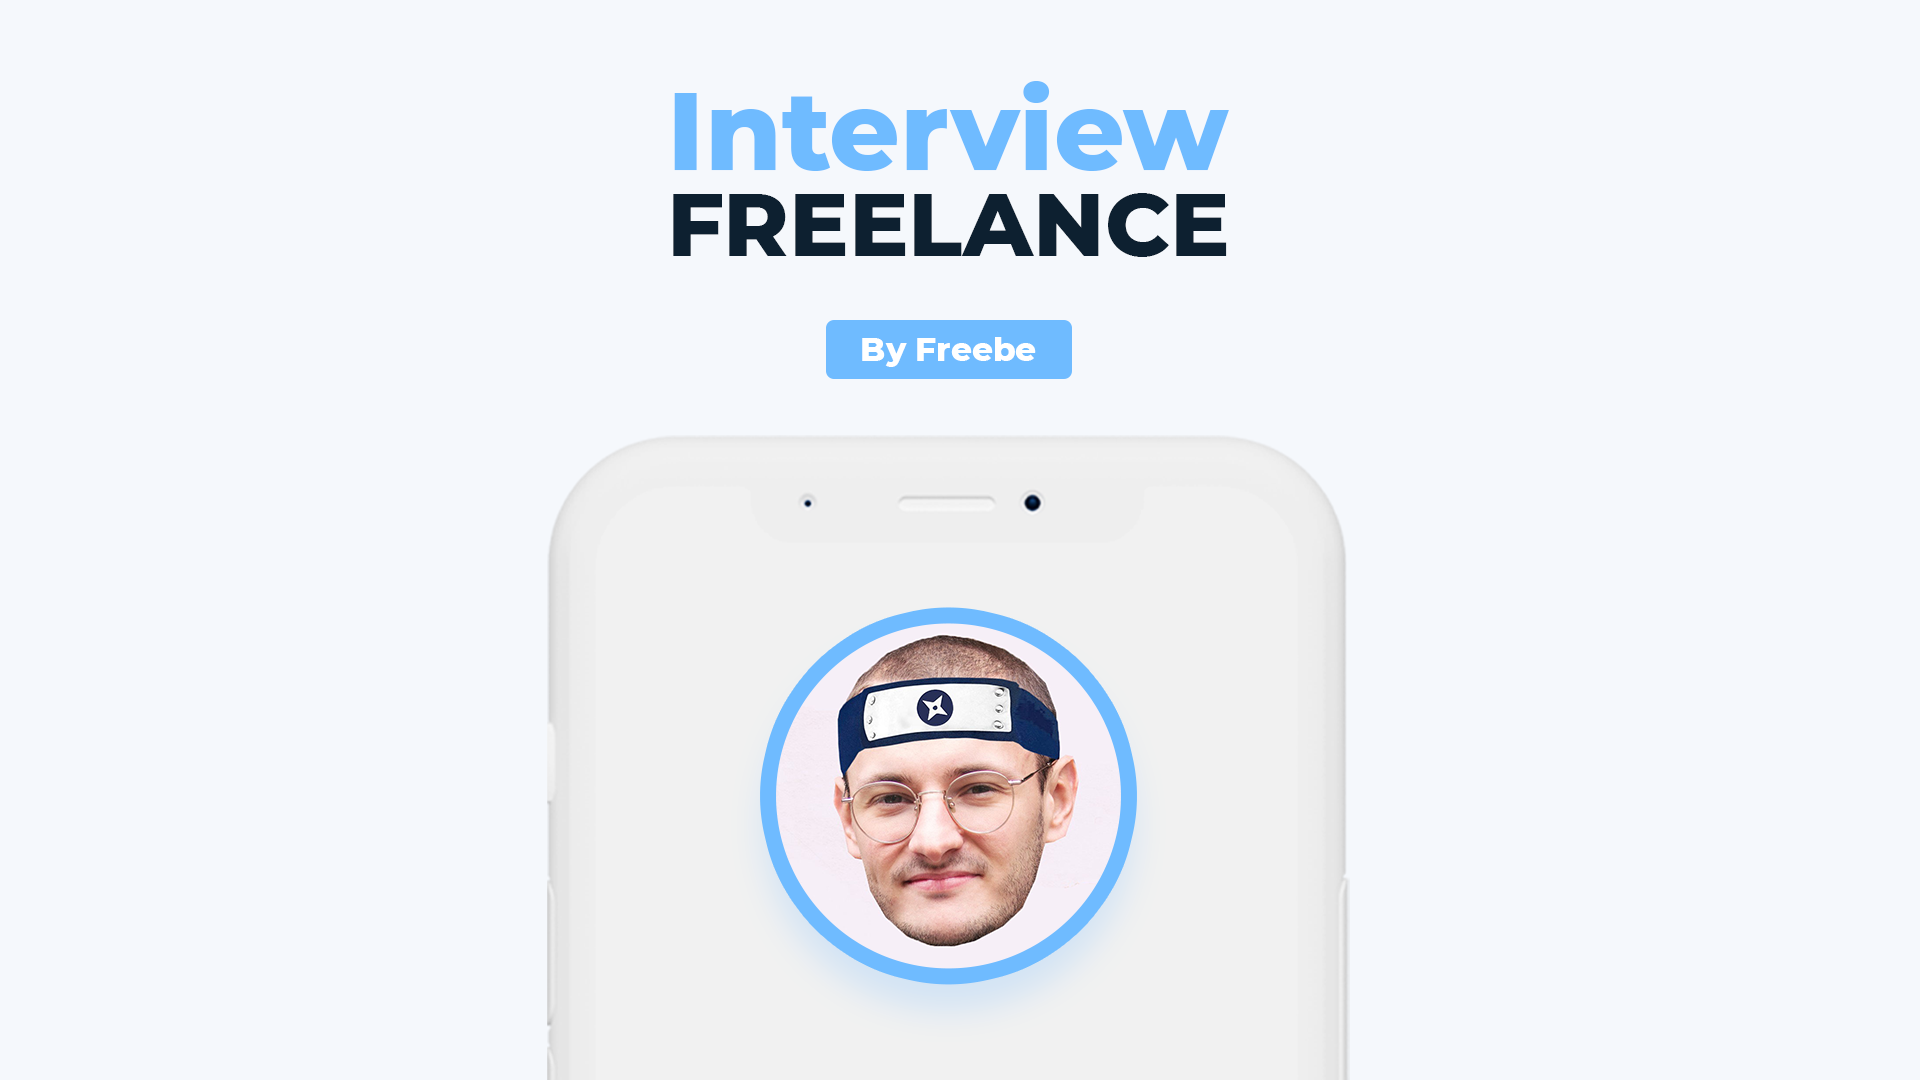 [Interview Freelance] Thibaut Manent, freelance et activiste